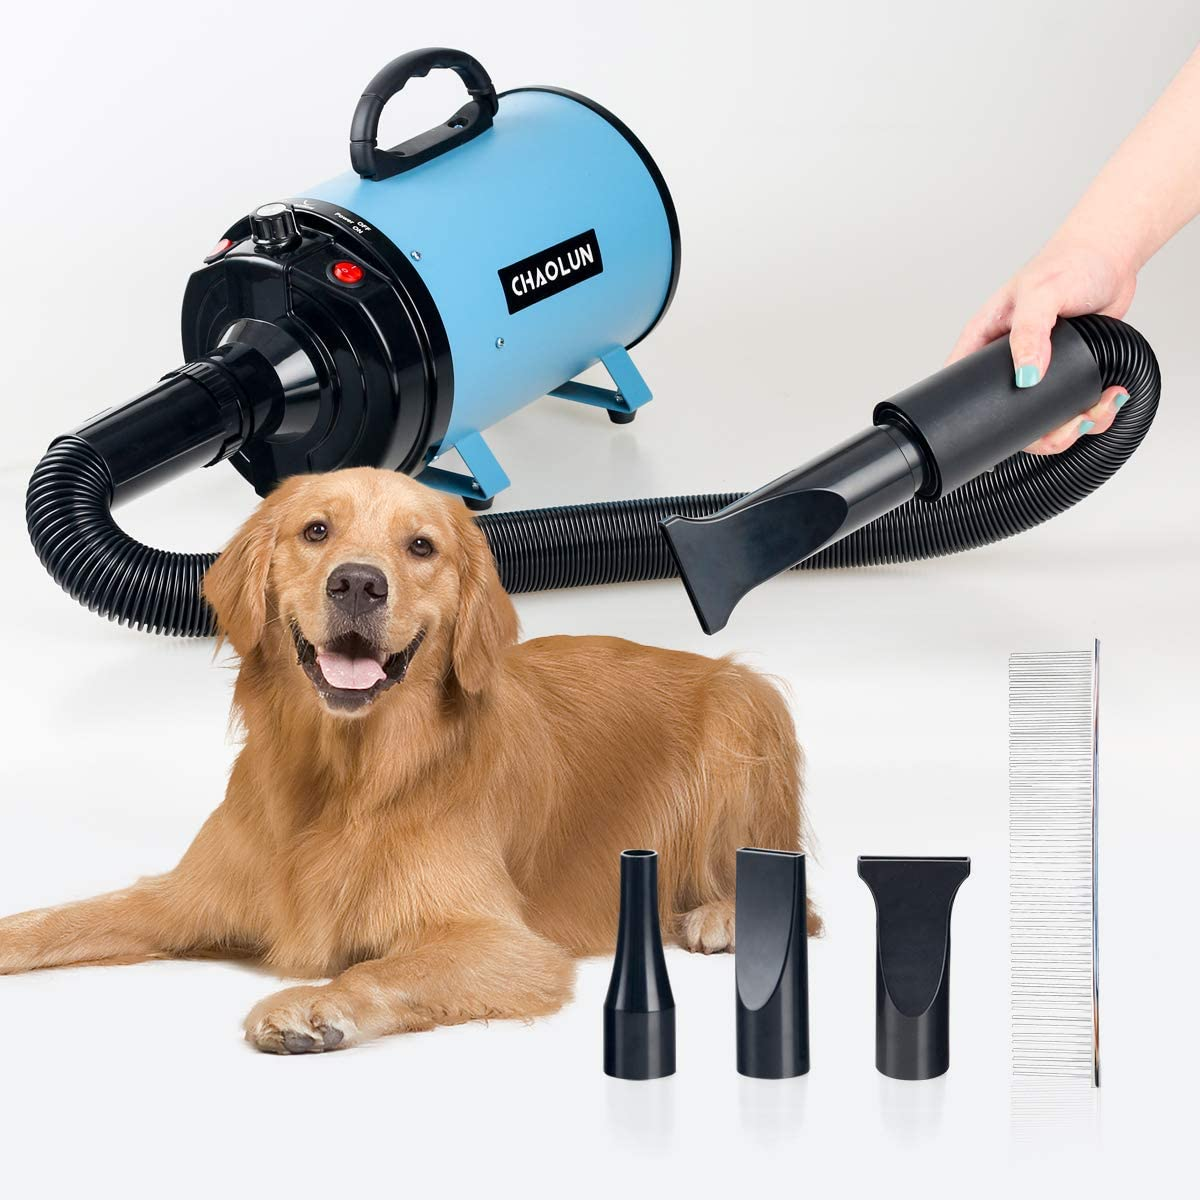 CHAOLUN High Velocity Pet Hair Dryer - Blower Grooming Dryer with Heater Dogs & Cats, 3.2HP 2400W Powerful Blow Force, Stepless Adjustable Speed, Reduce Noise, Heat Insulation